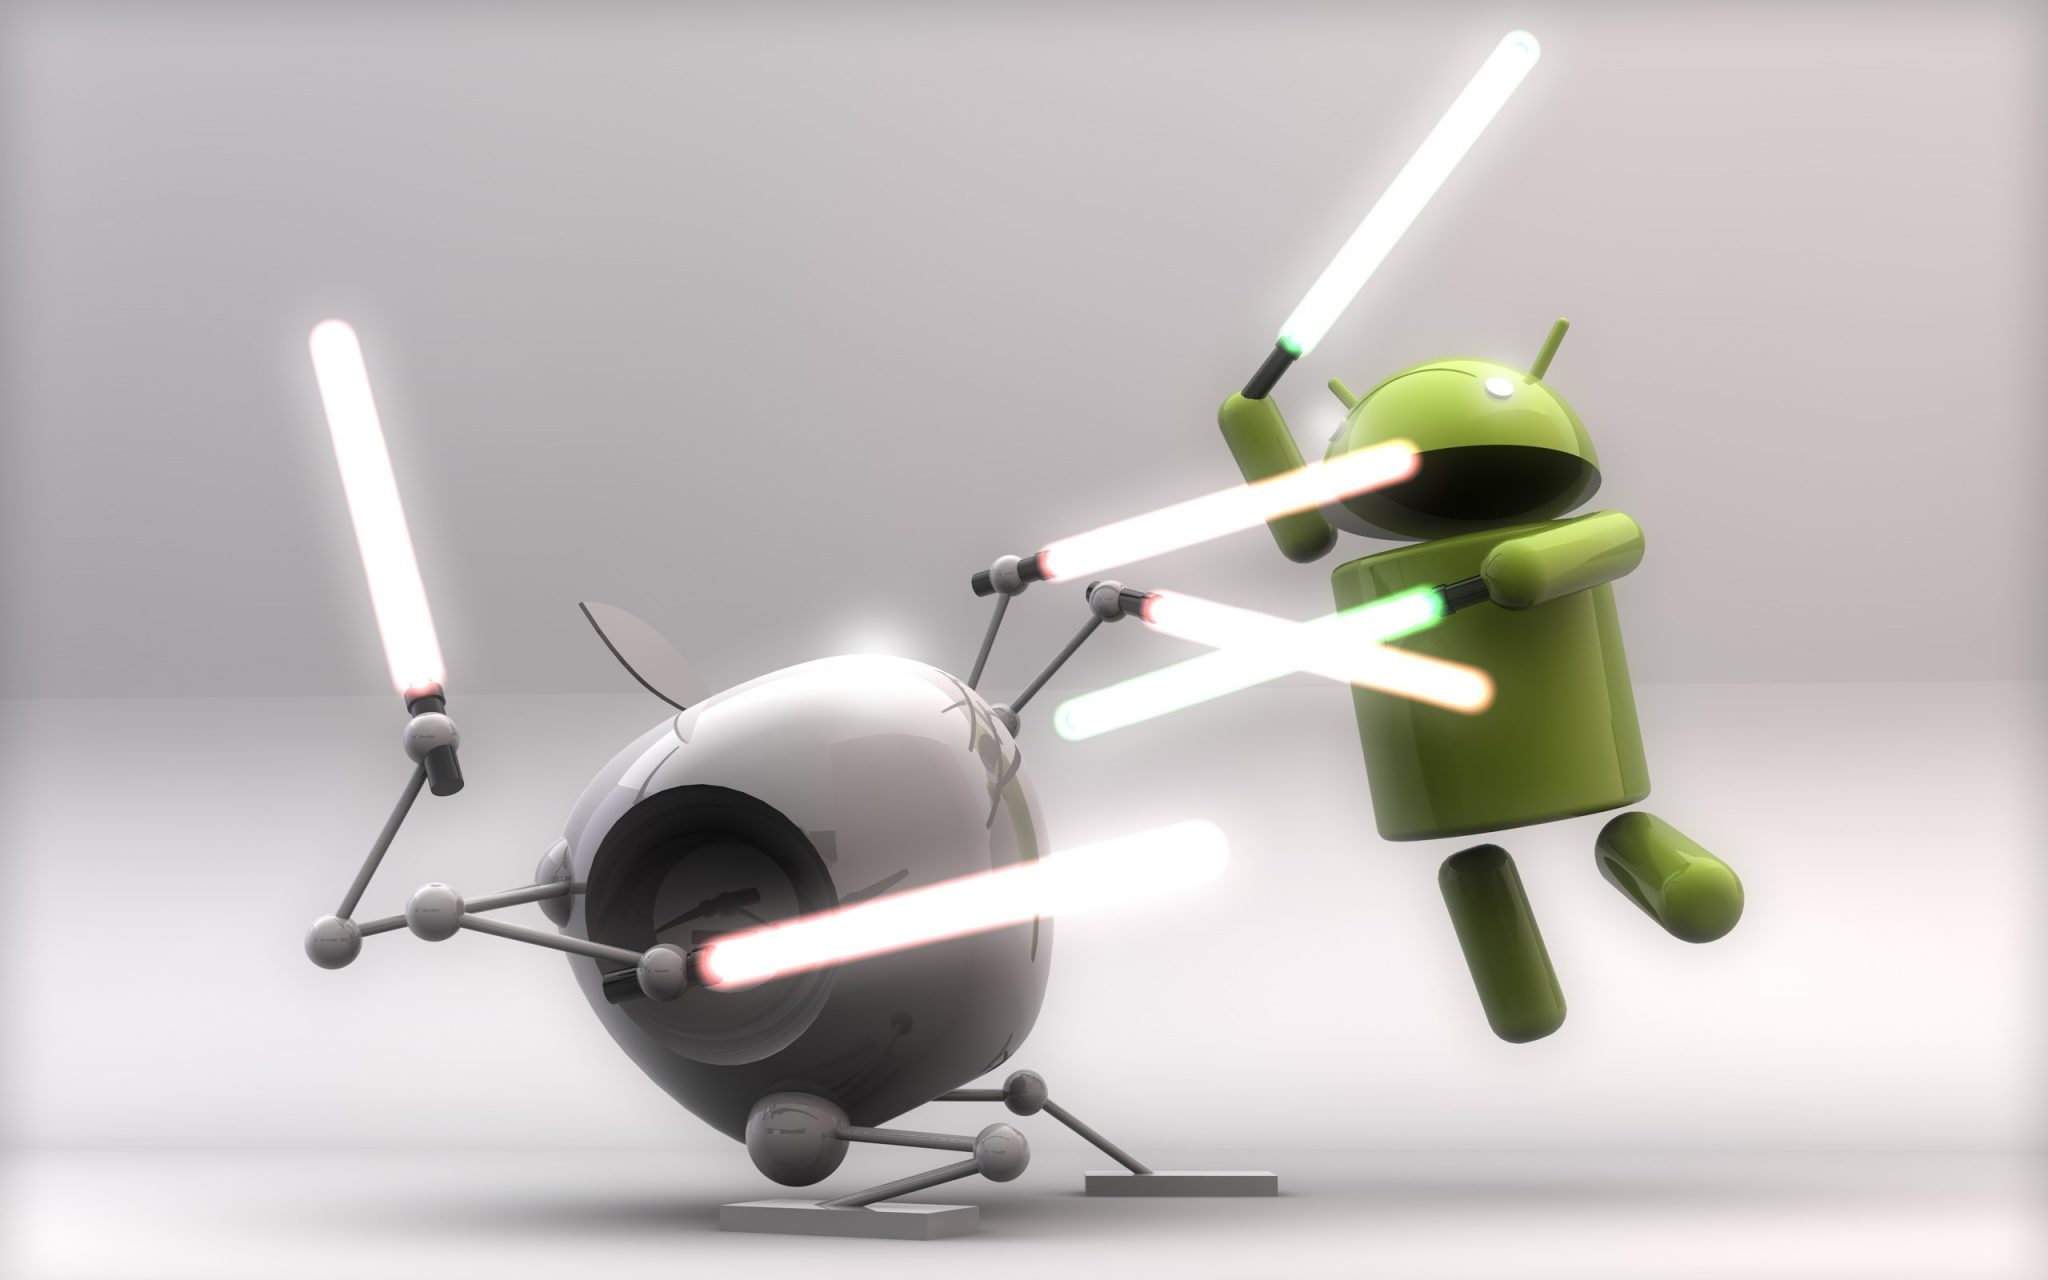 iPhone 5 Android Market iPhone vs Android: Why Apple Has Stumbled While Android Grows